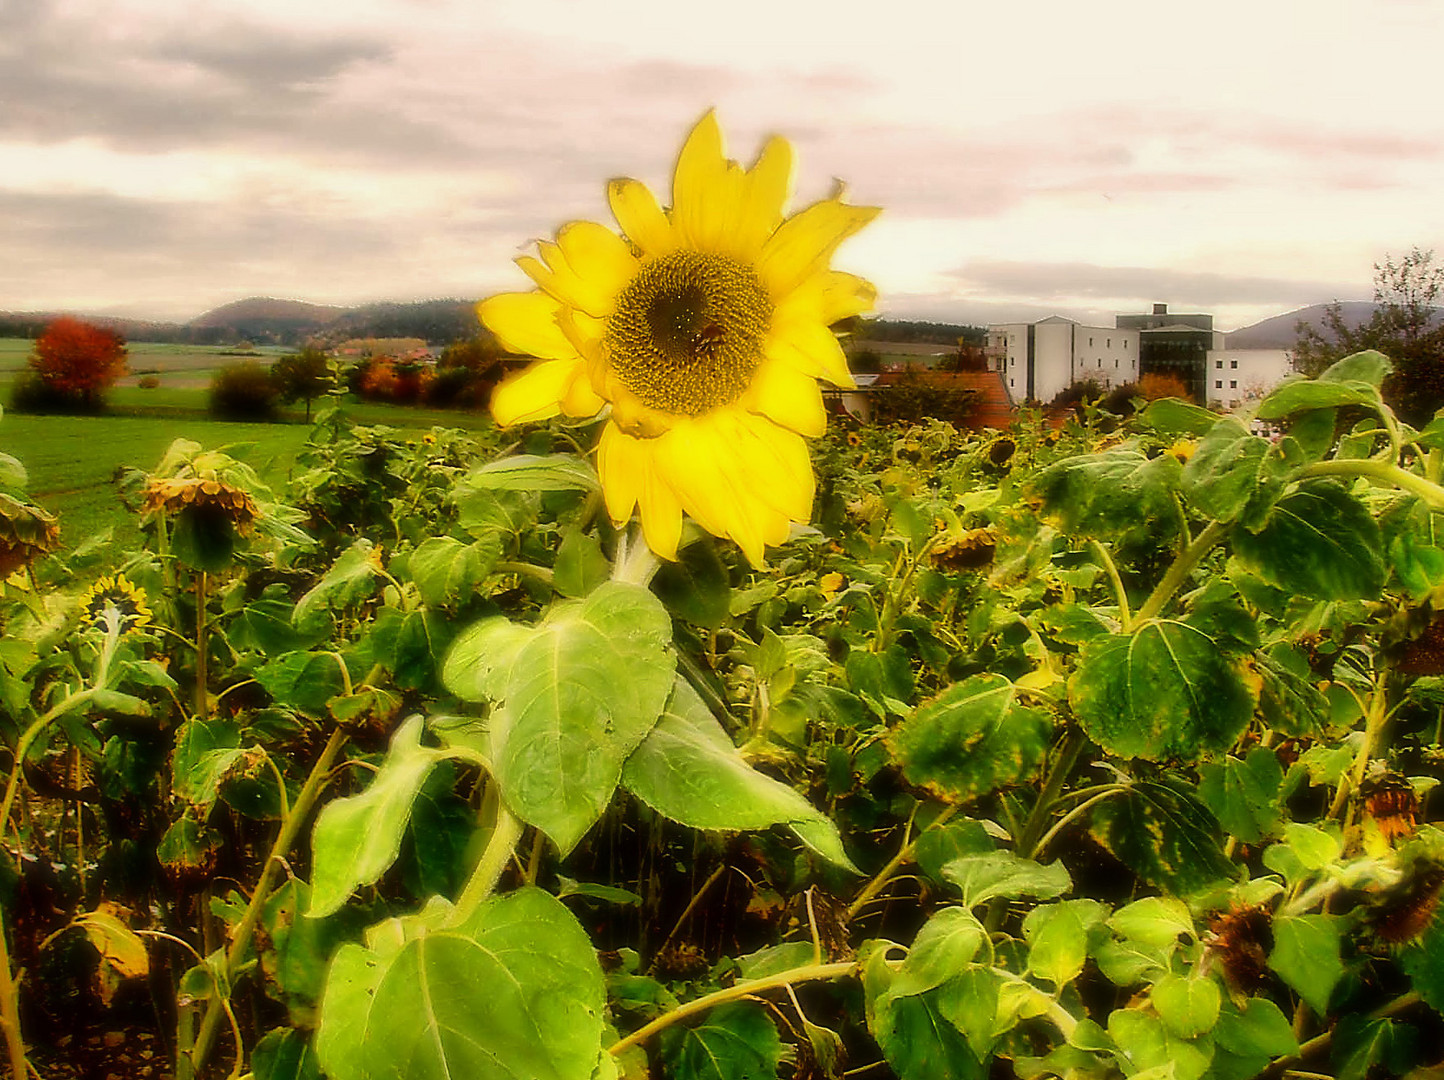 The last Sunflower